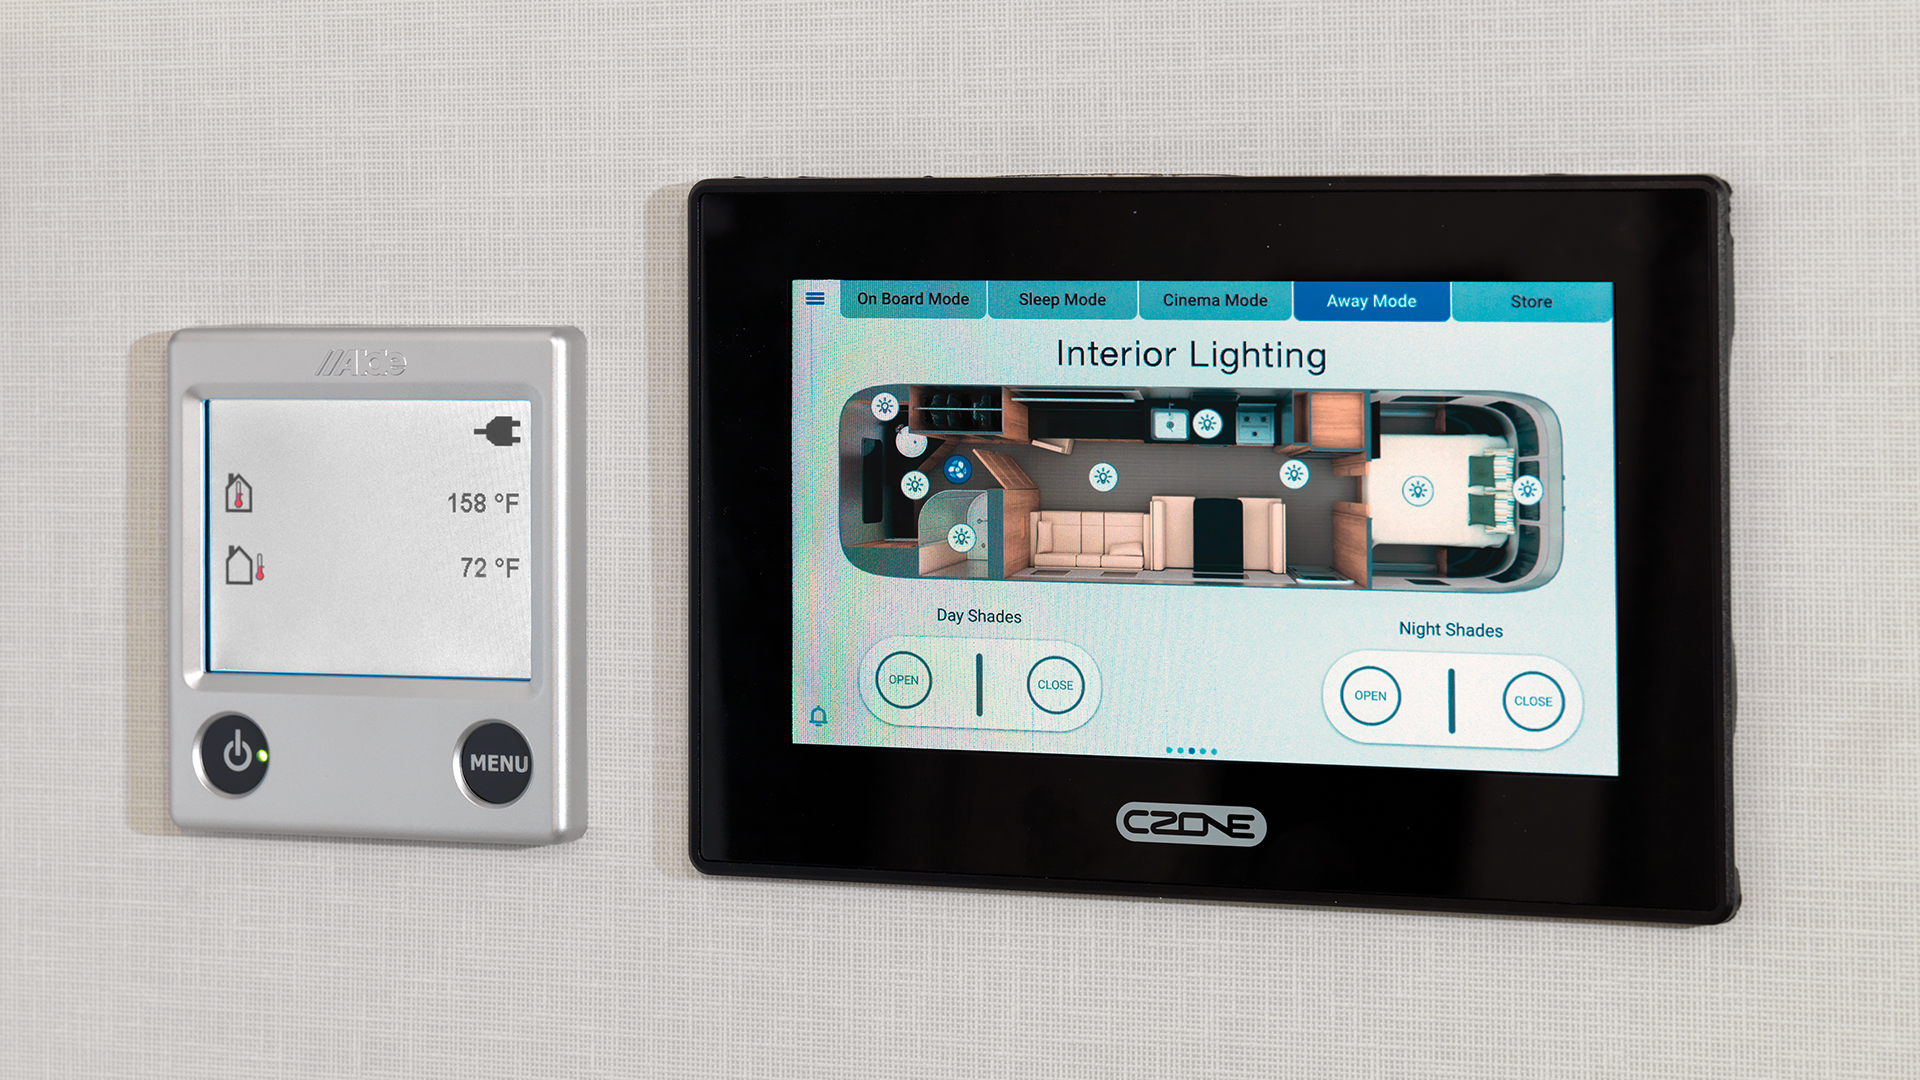 Airstream-Smart-Control-7-Inch-Touch-Screen-Interior-Lighting-Control